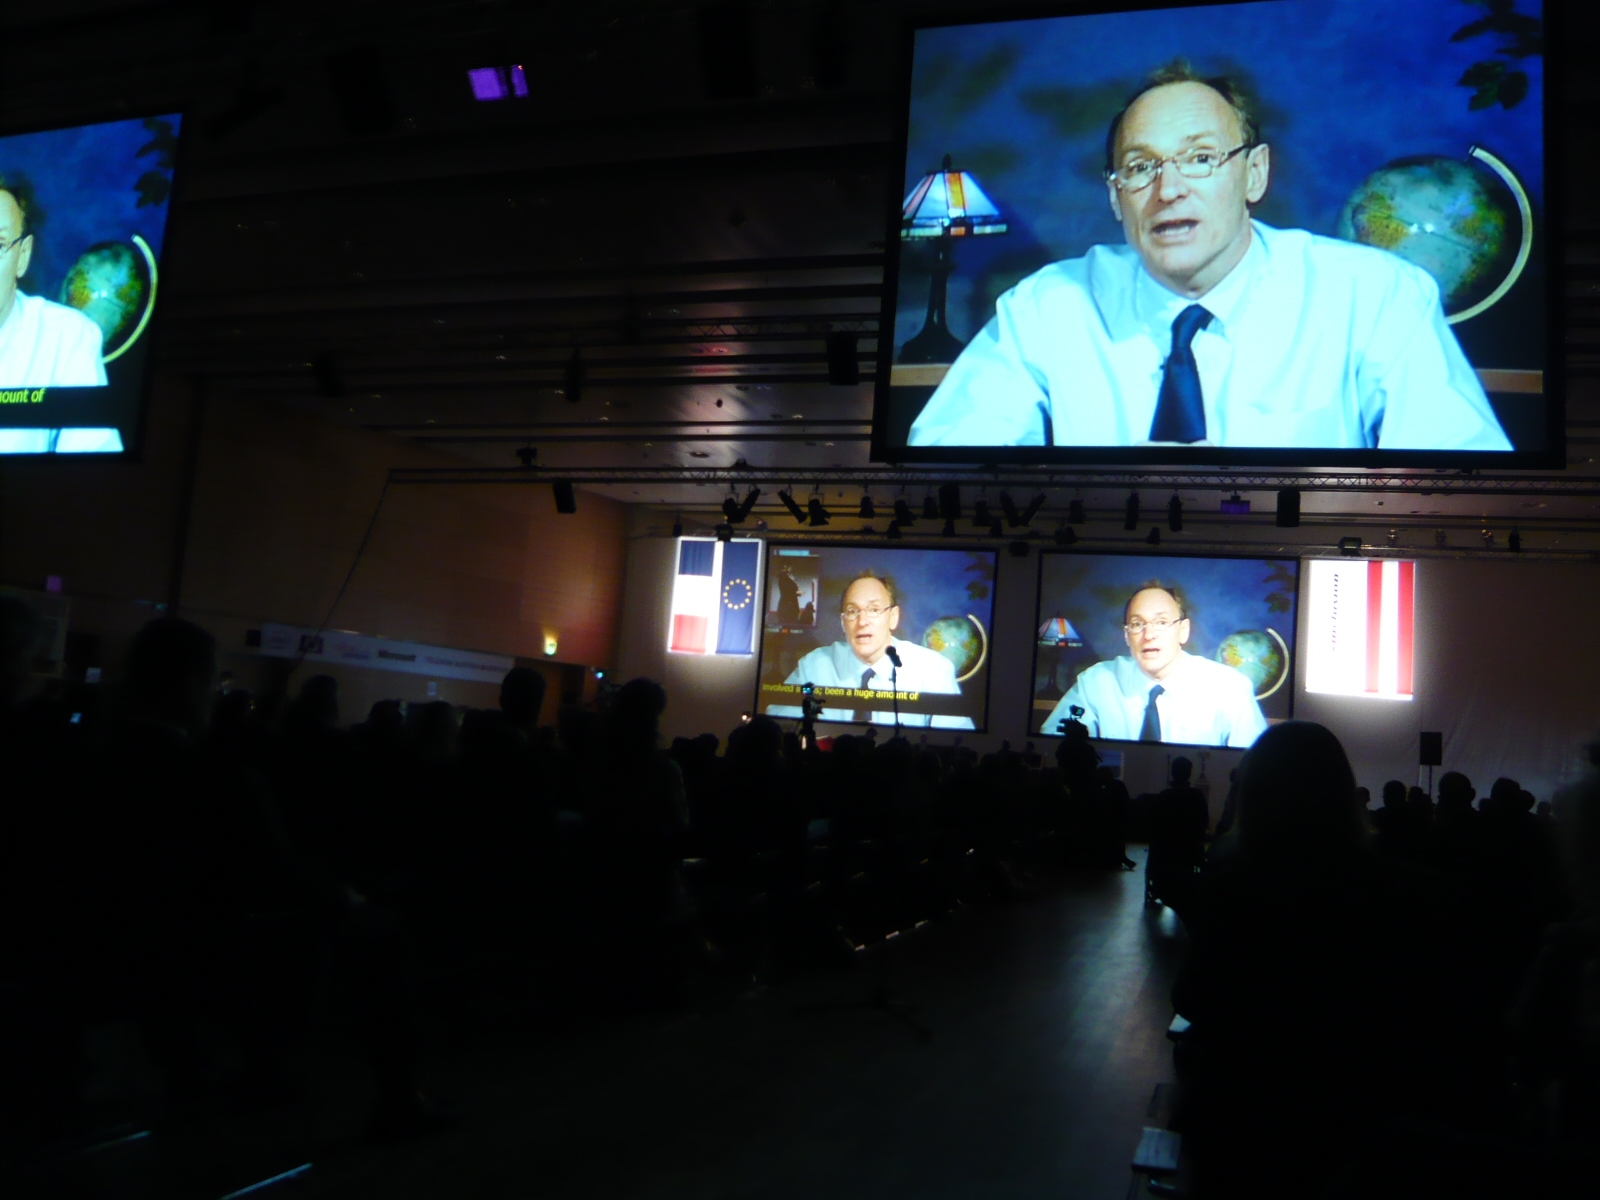 Sir Tim Berners Lee addressing the audience in a videomessage